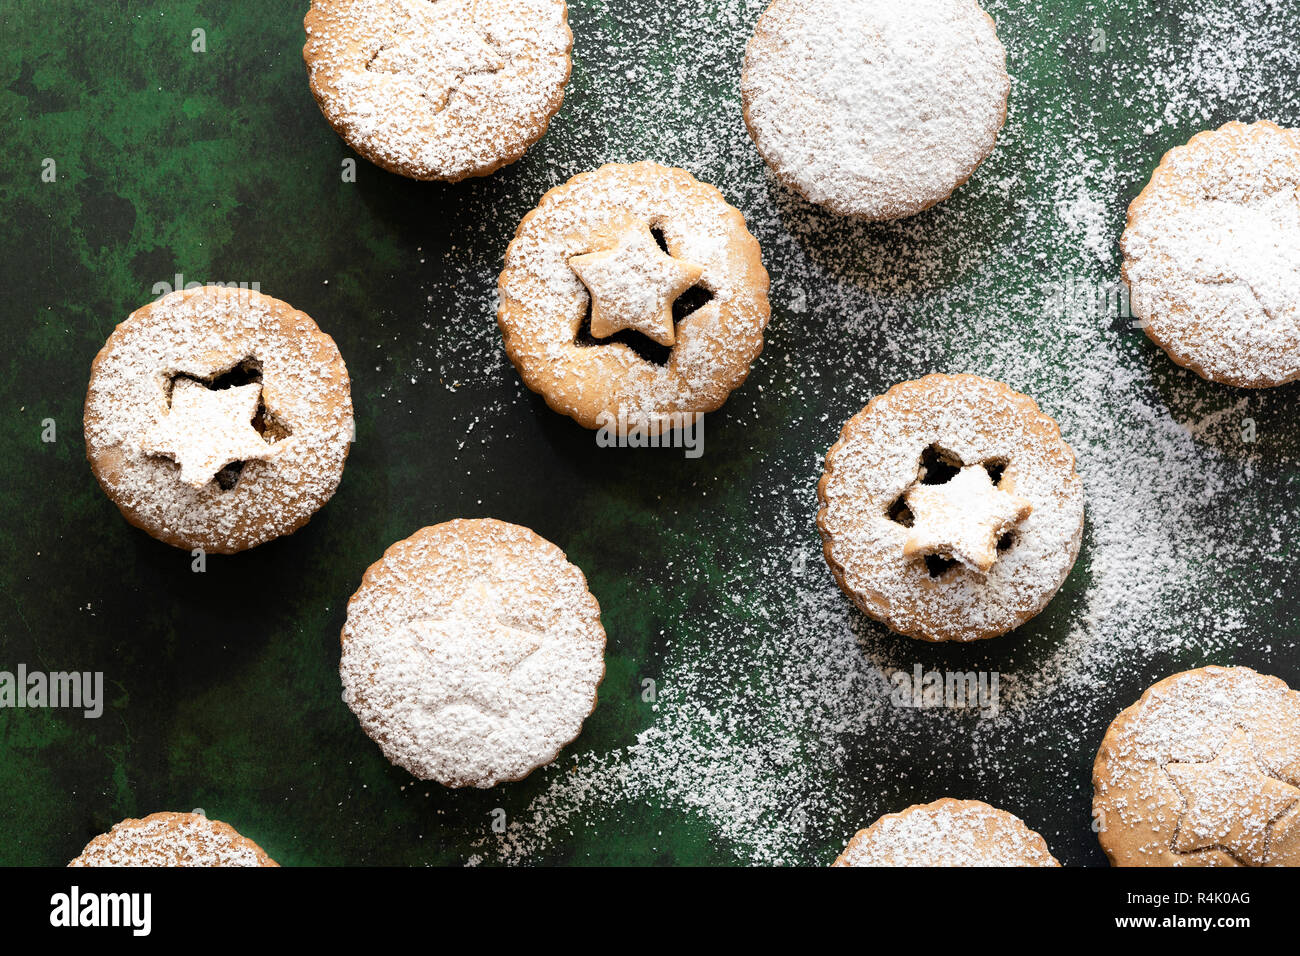 Christmas fruit mince pies with a pastry star on top. - Stock Image